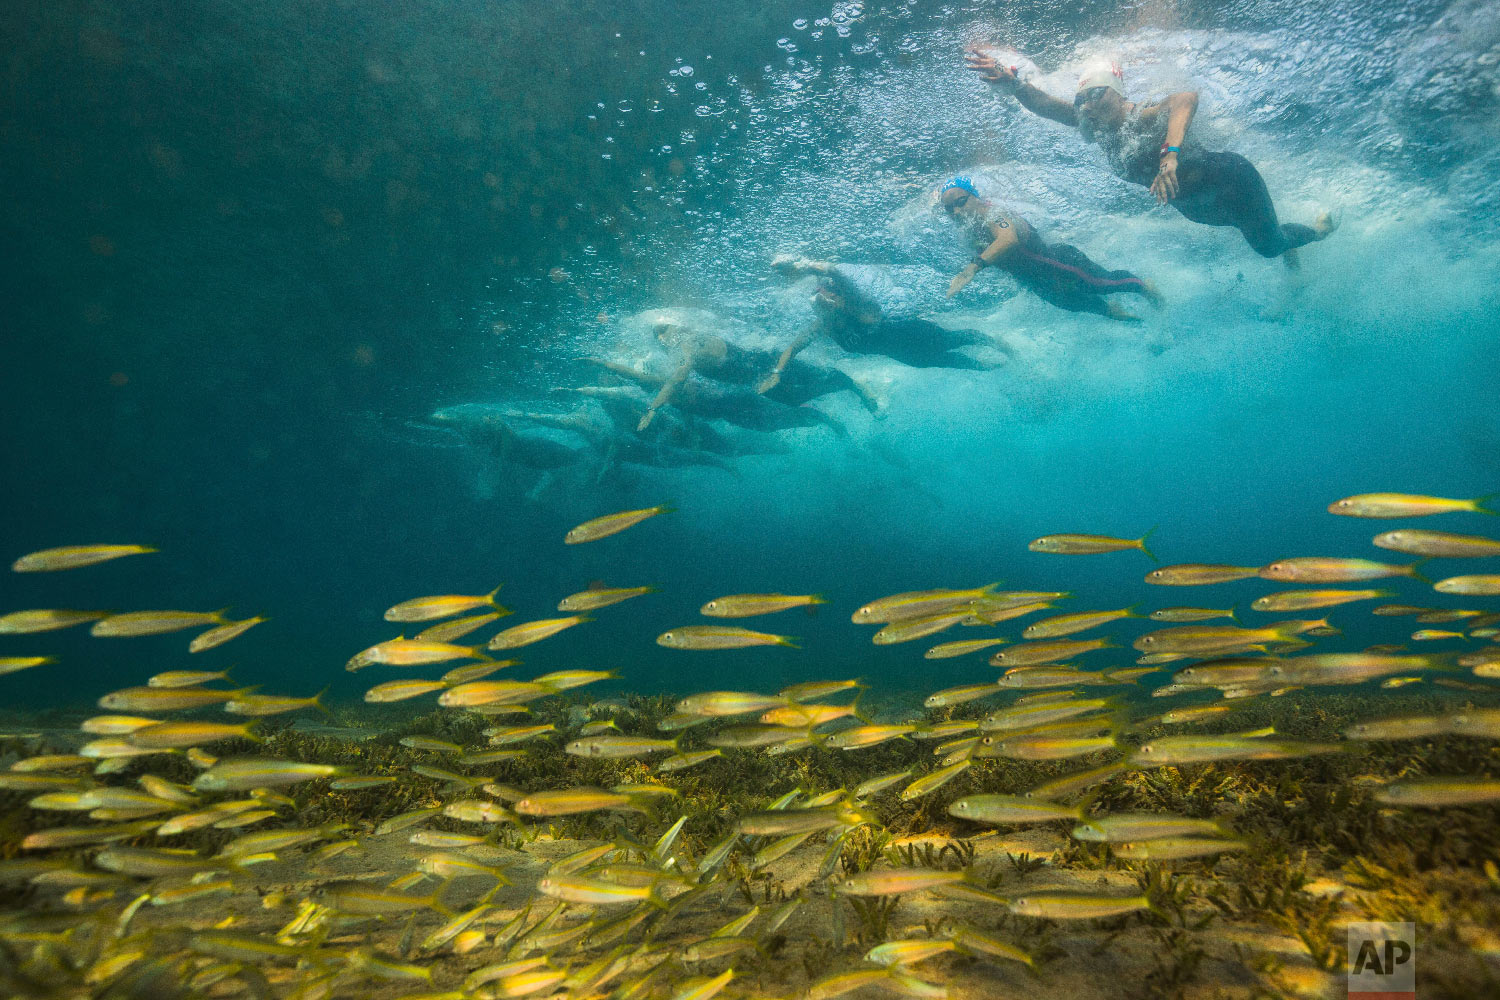 Swimmers compete at FINA World Junior Open Water Swimming Championships in Eilat, Israel on Sept. 7, 2018 (AP Photo/Gilad Kavalerchik)